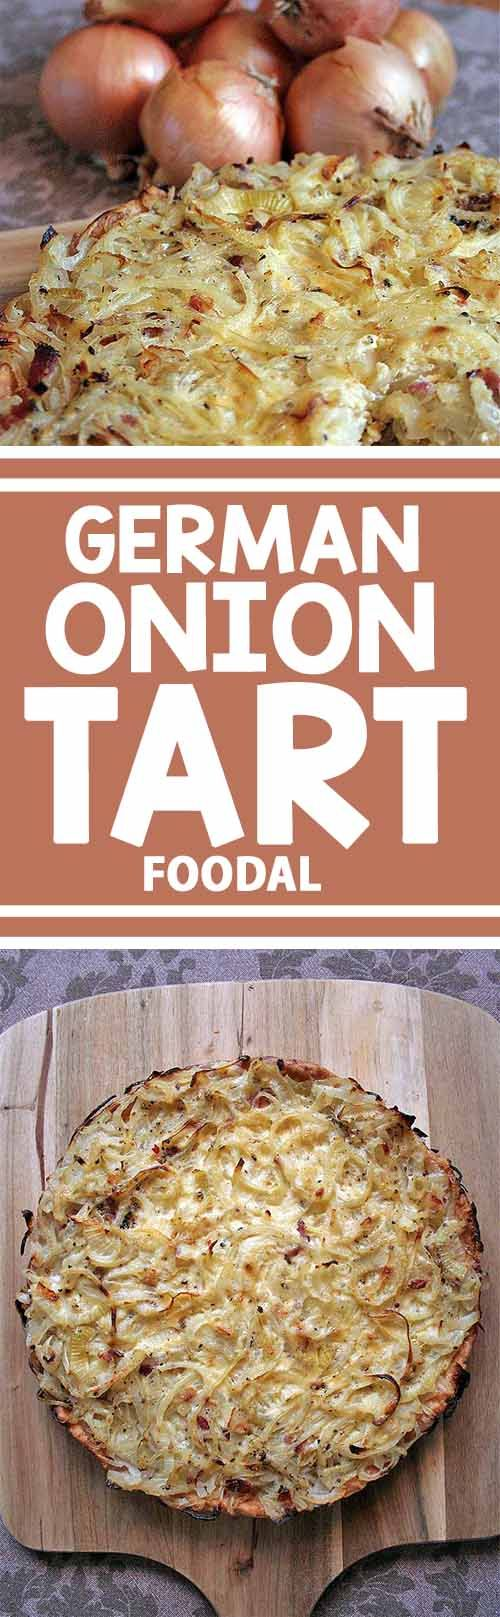 This classic German onion tart is the perfect dish for a cozy night in when it's cold outside. And served with a green salad or some veggies, it makes a delightful choice for lunch or dinner throughout the year. Enjoy the savory and delicious combination of onions, bacon, and creme fraiche in every slice.